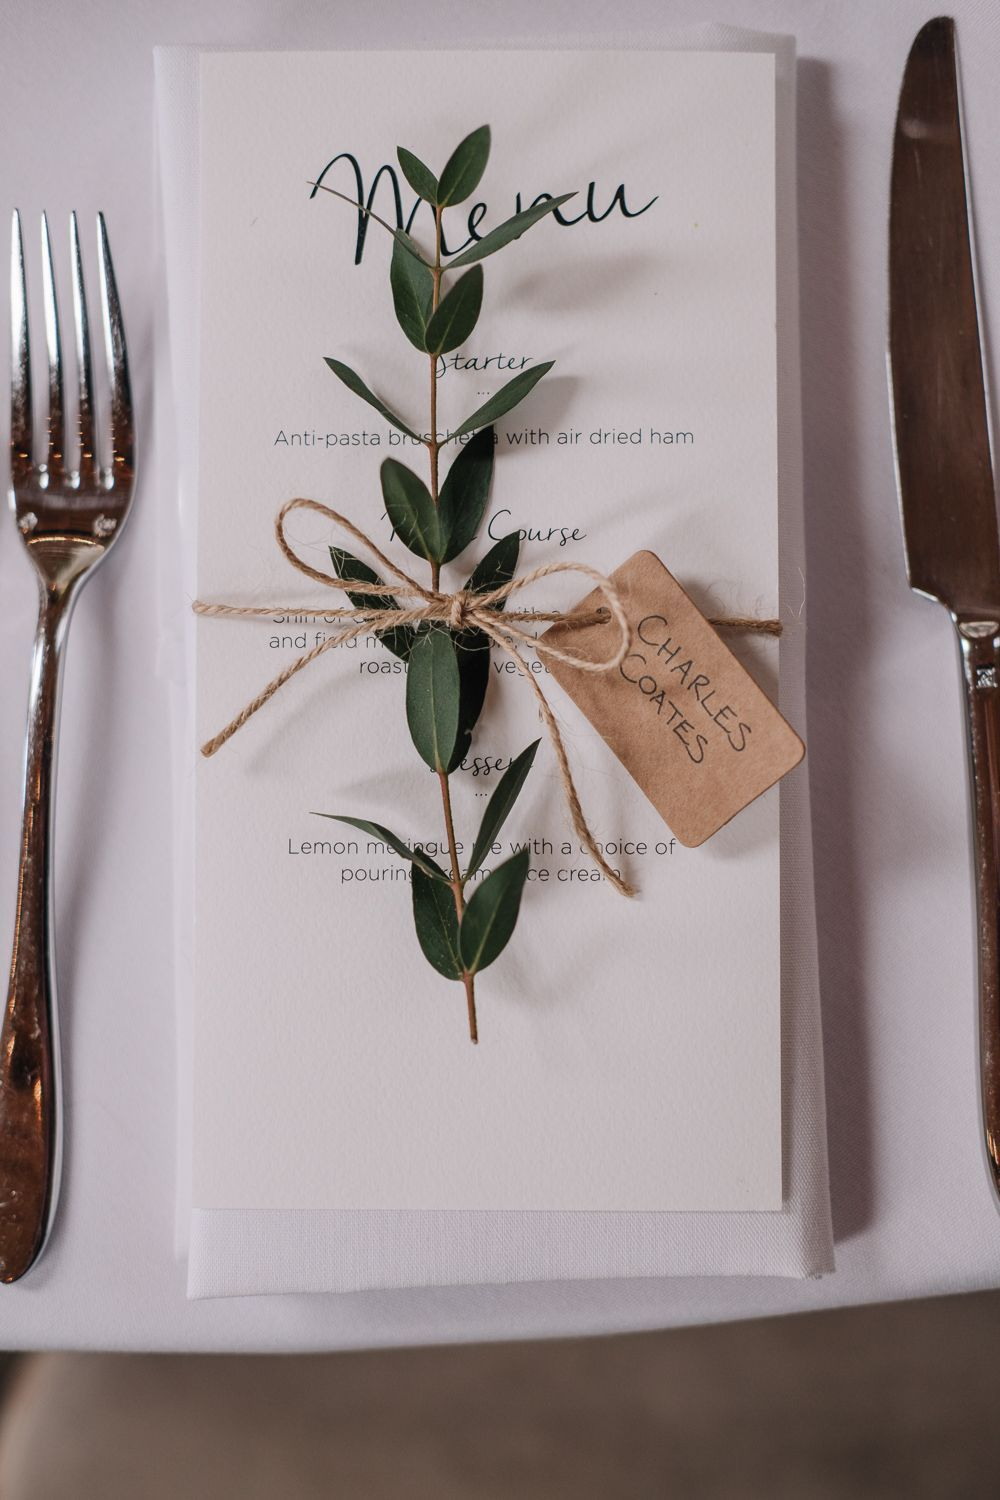 Greenery Place Setting Menu Owen House Wedding Barn Nessworthy Photography #Greenery #PlaceSetting #Wedding #greenerywedding